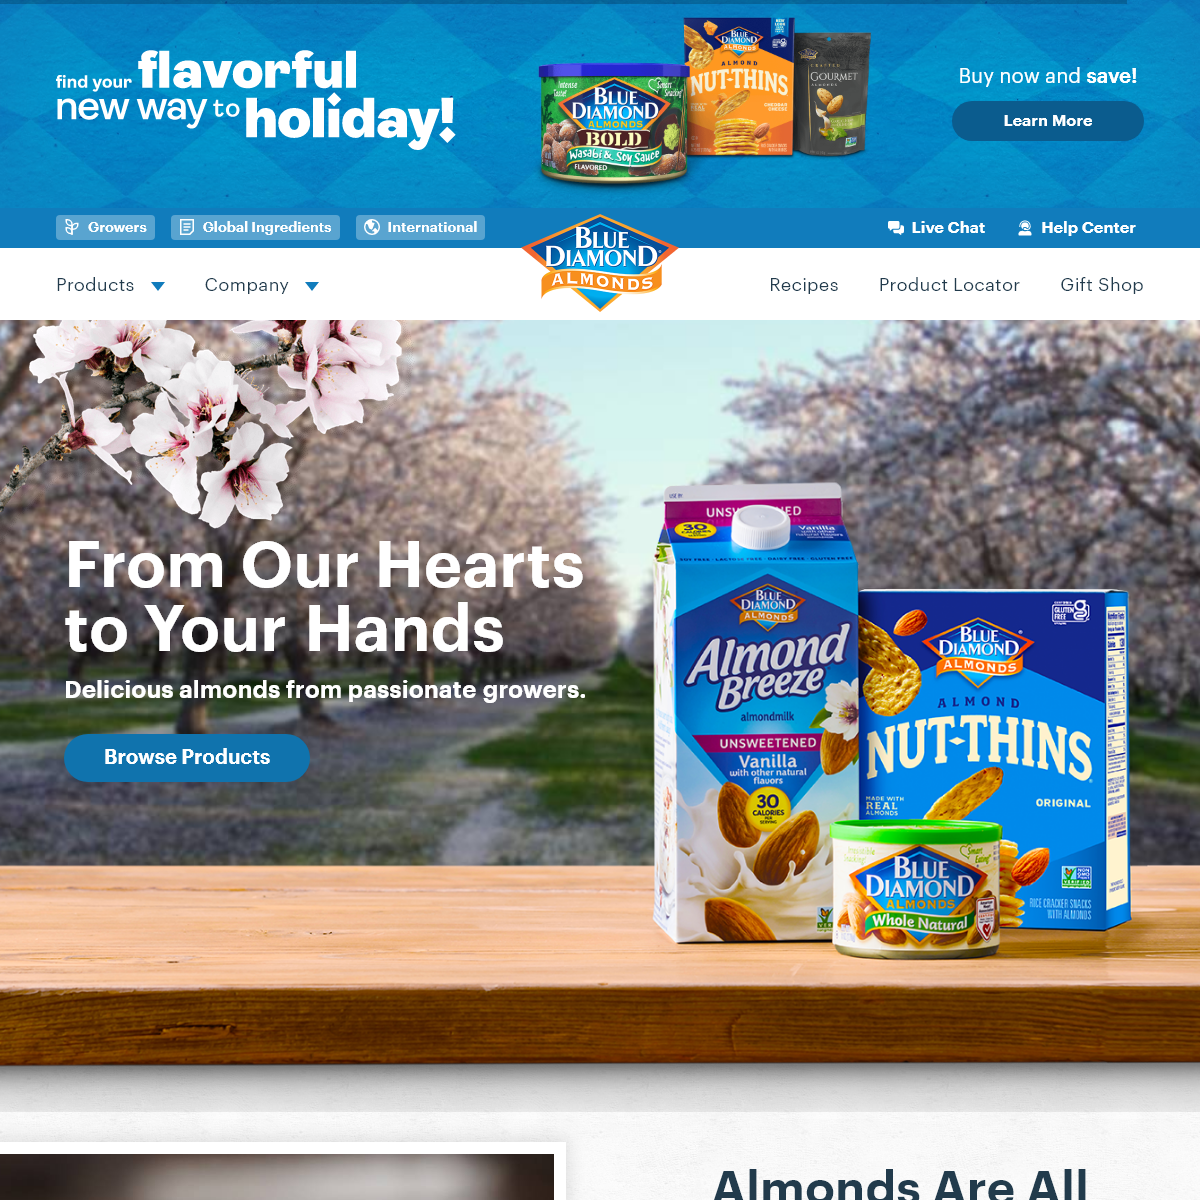 From Our Hearts to Your Hands - Almond Products - Blue Diamond